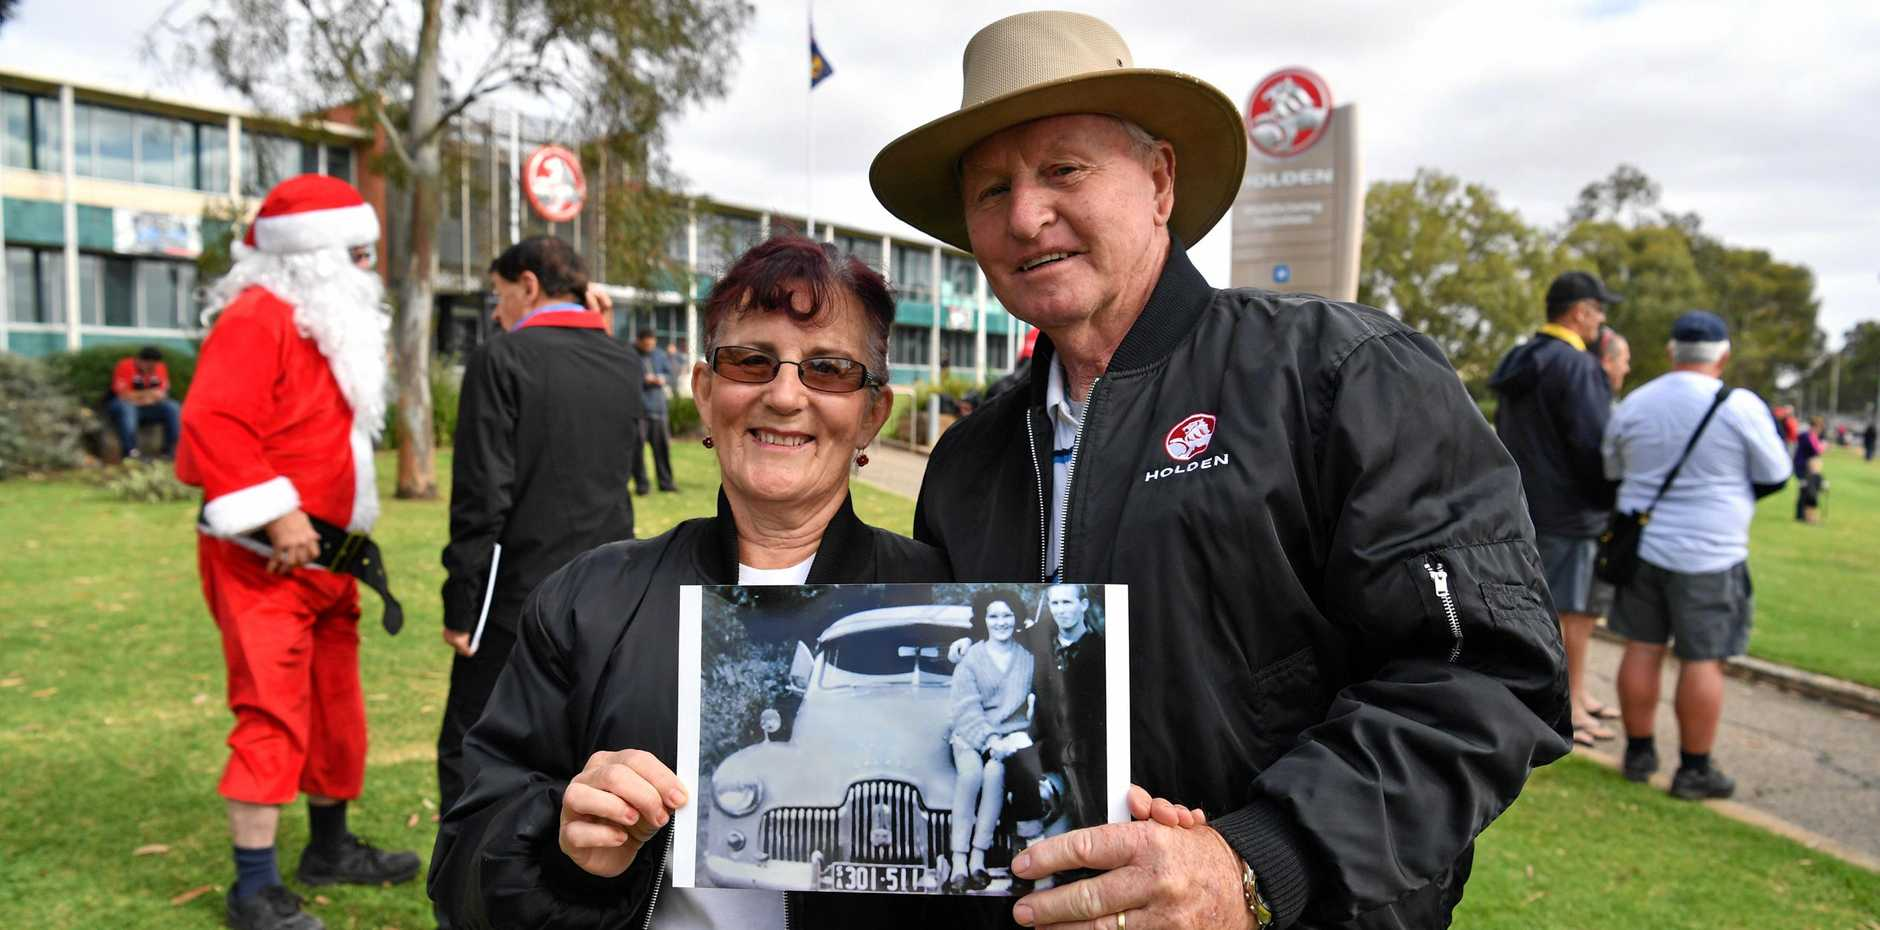 LOST INDUSTRY: Long time Holden Enthusiasts Linda and Maurice McCartney hold a photograph of themselves in their youth outside the Holden plant in Elizabeth, Adelaide on Friday, October 20, 2017. Holden produced its last car in Australia last year.